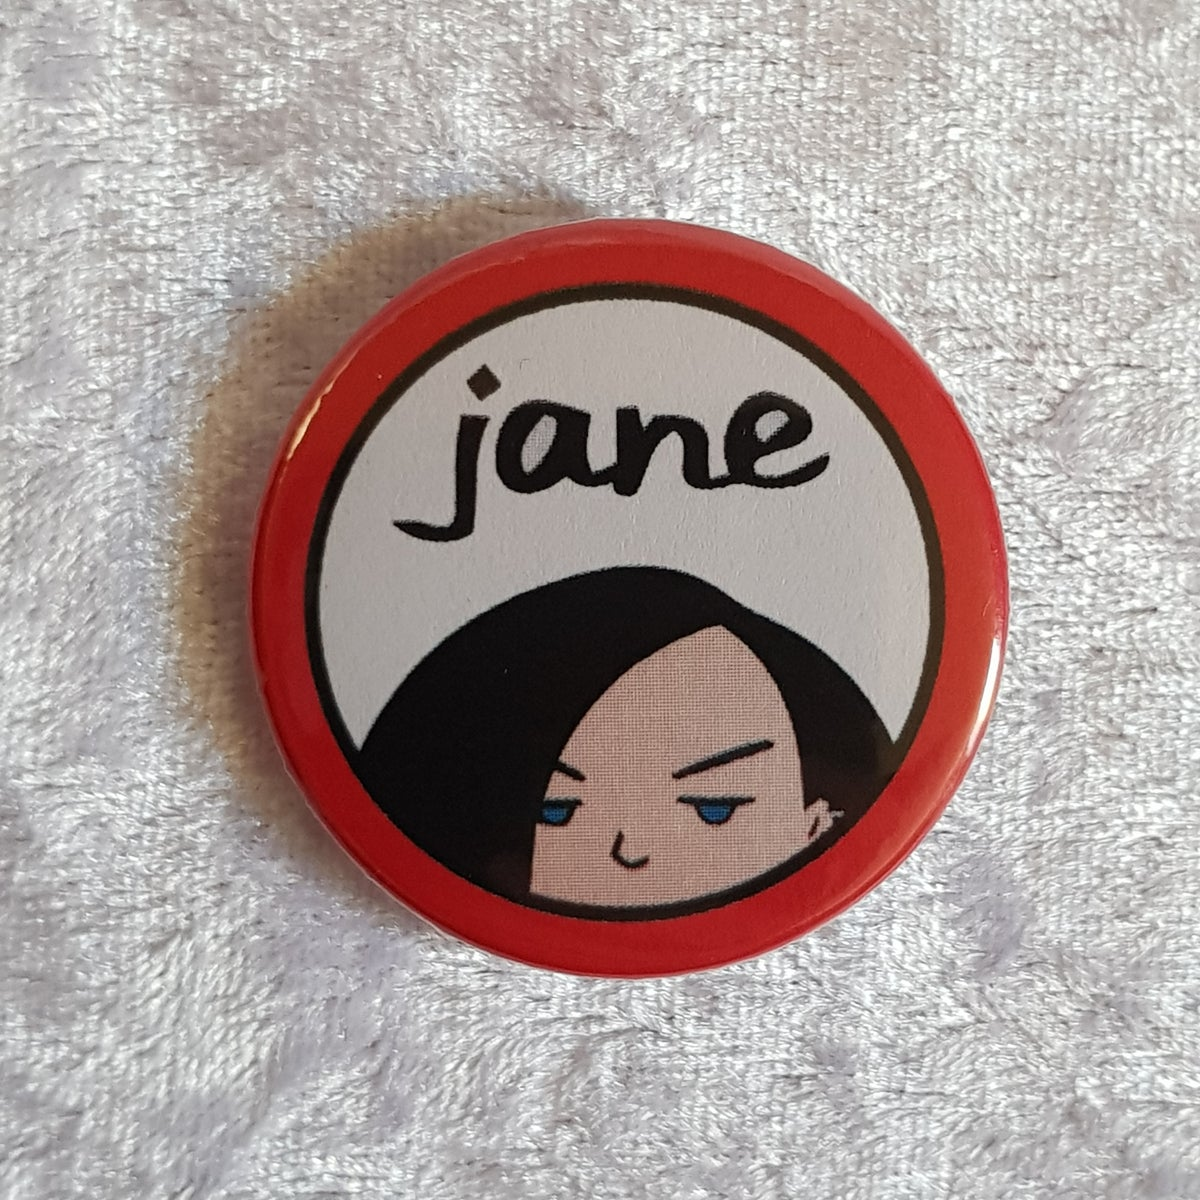 ❤️ Badge logo Jane ❤️